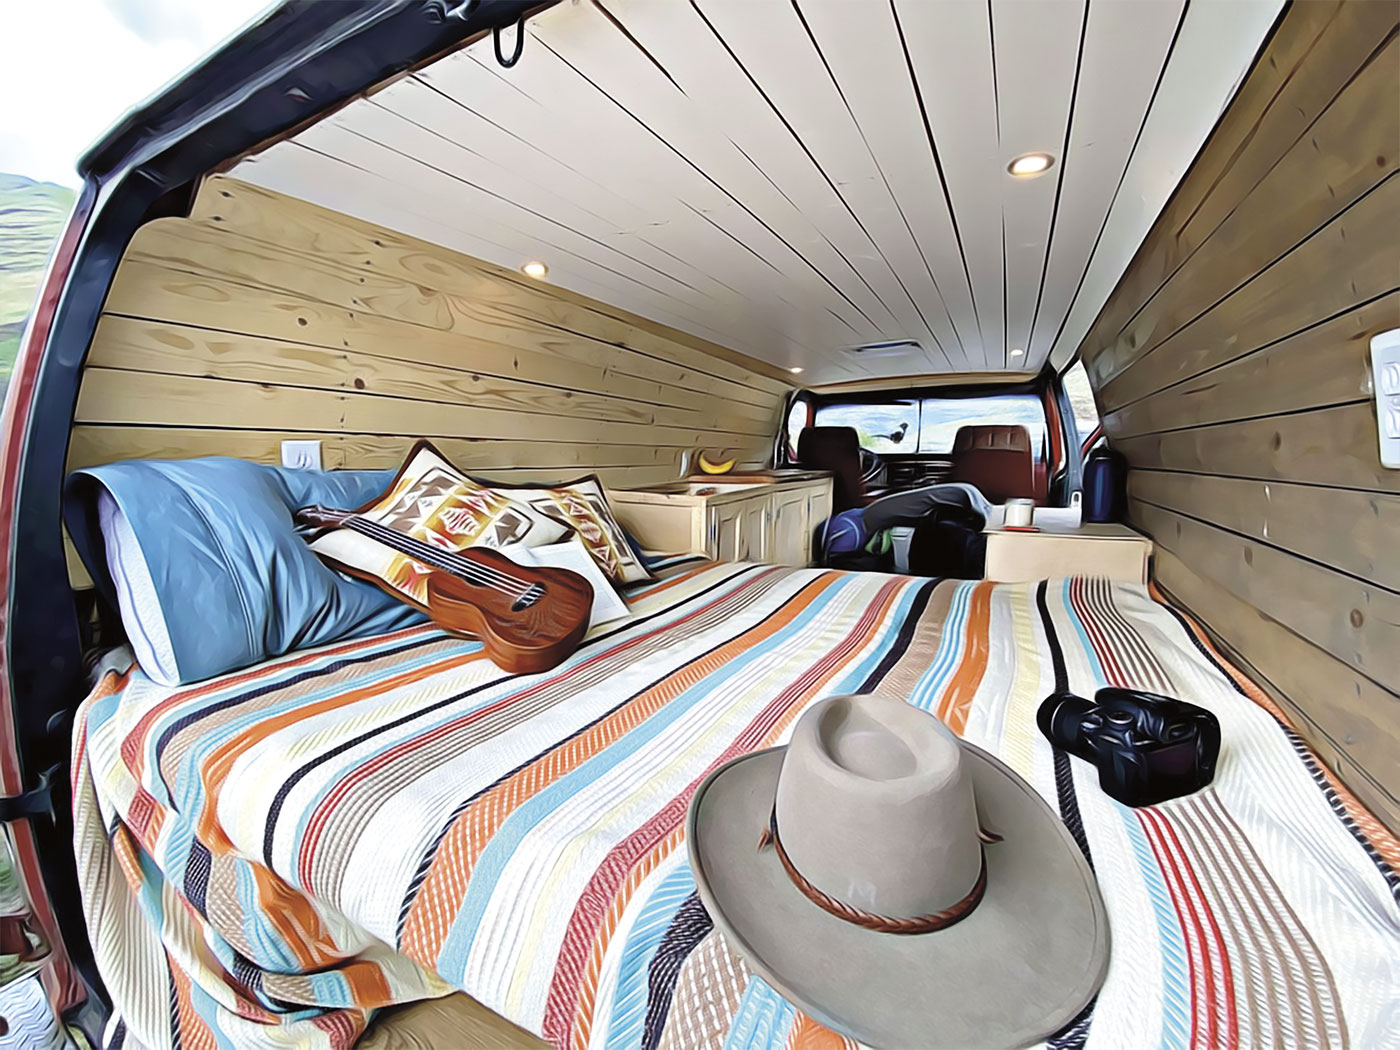 Inside of Dalton Russell's renovated van with bed, guitar, sink